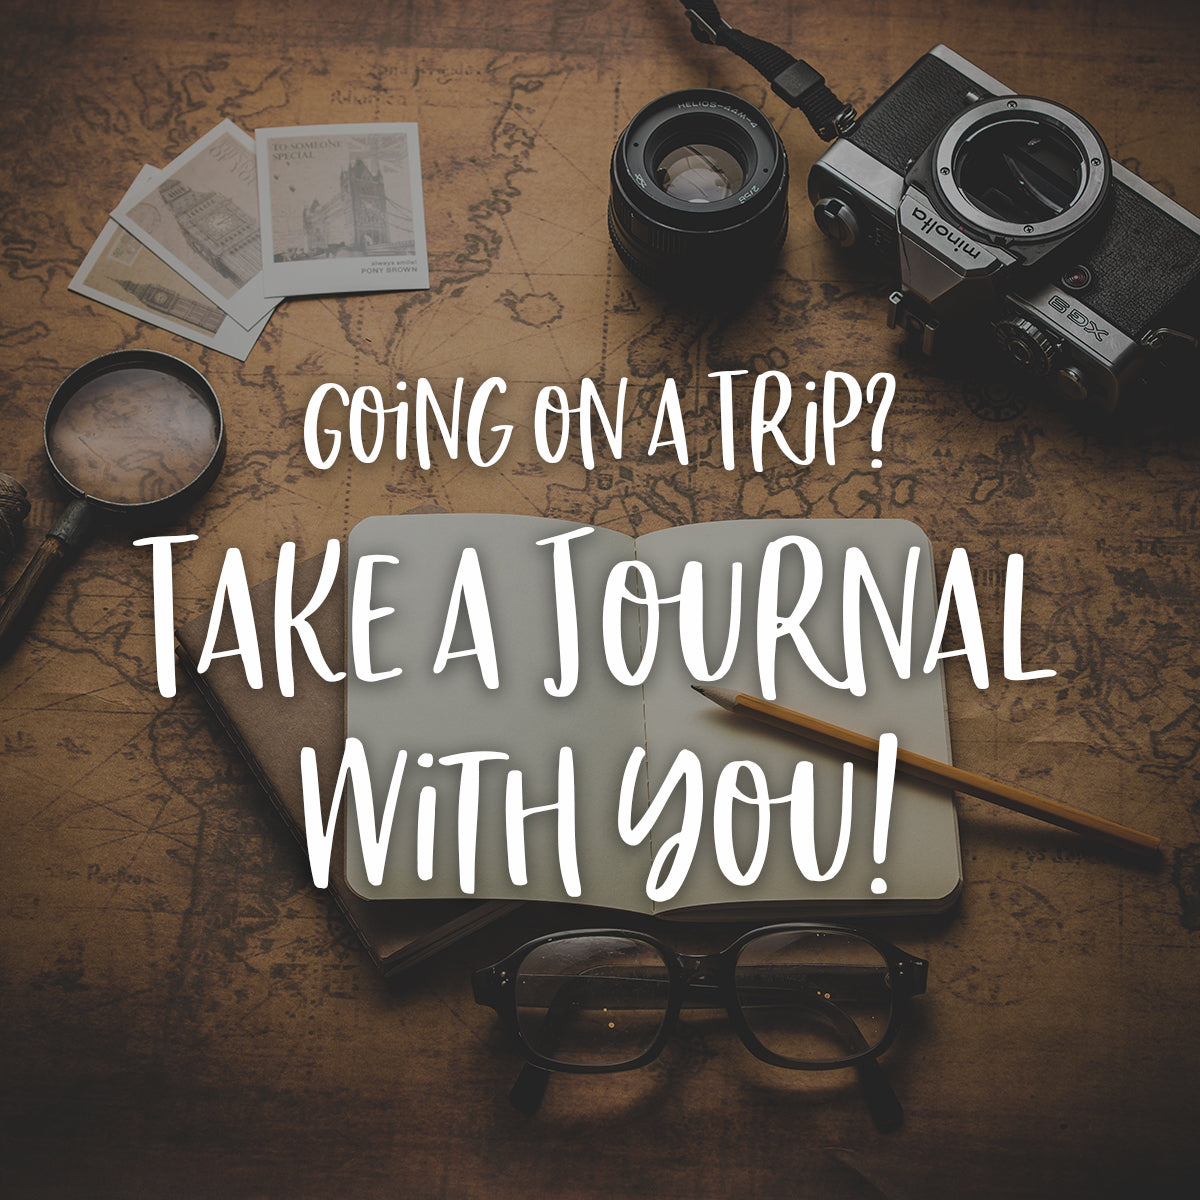 Going on a trip? Take your journal with you!